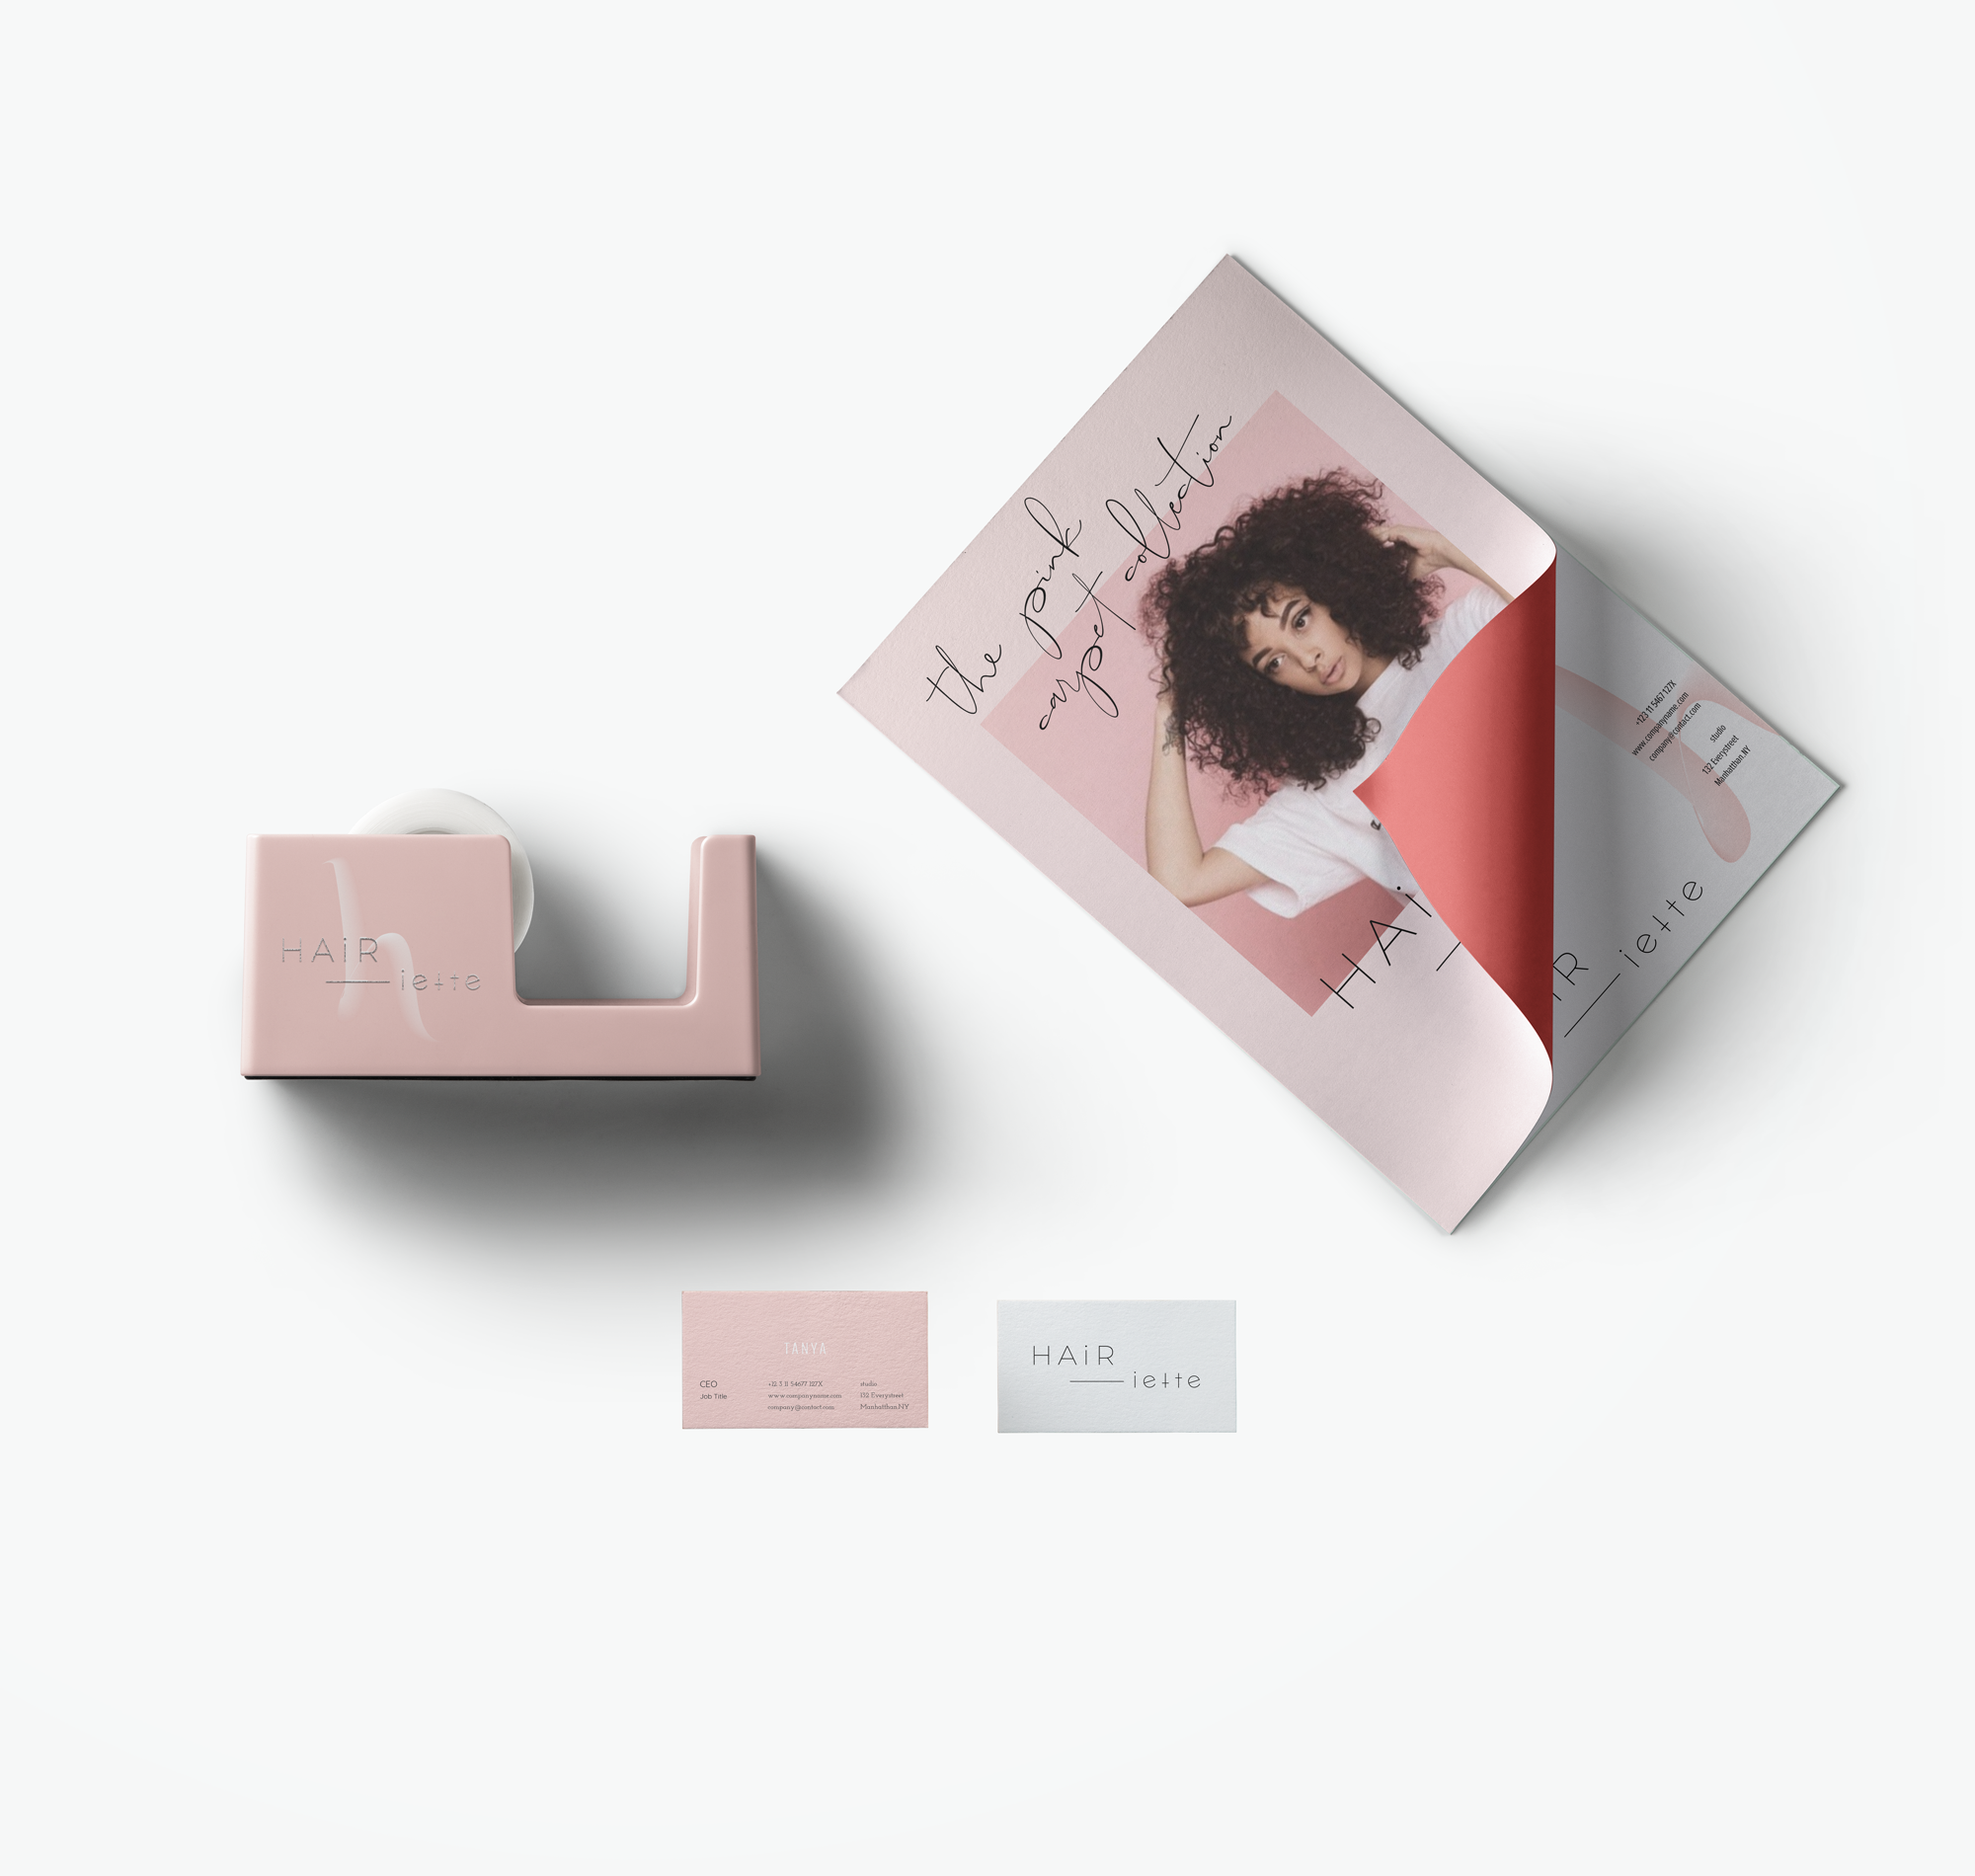 the design - youthful, bold, feminineThe HAIRiette brand is all about a lux beauty brand that is fun and bold. It feels city and friendly all at once.